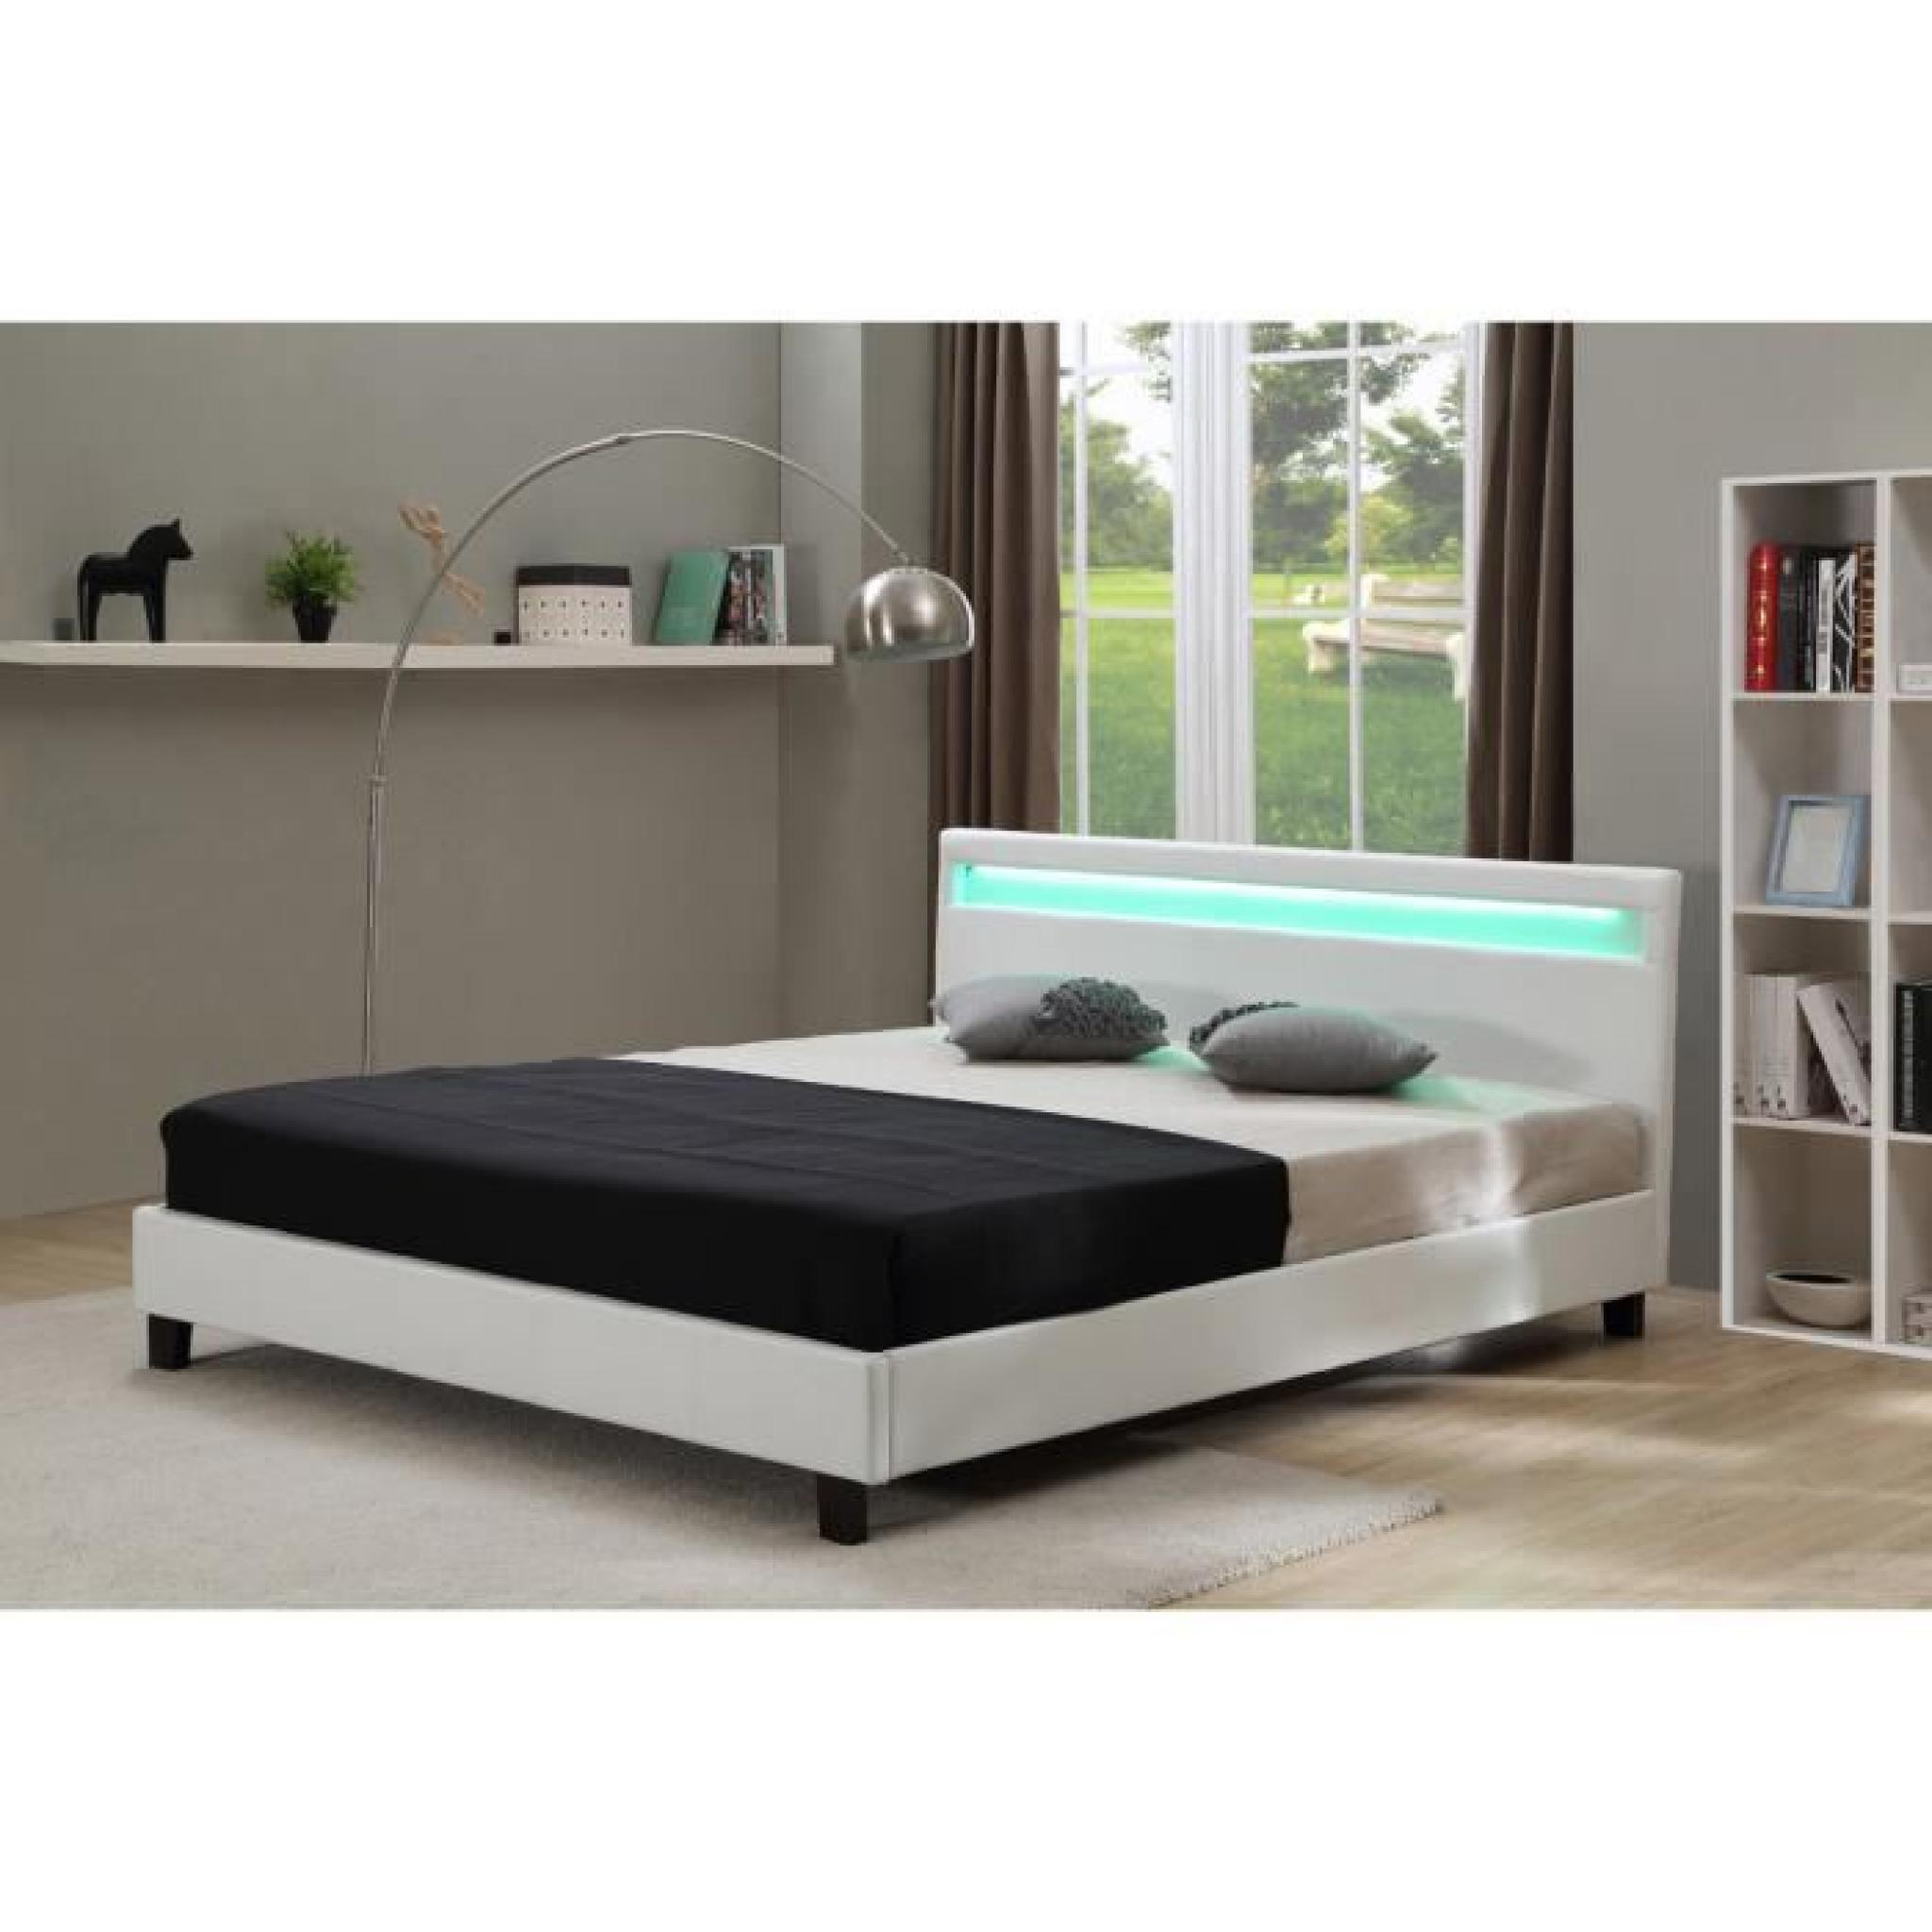 lit avec led maria blanc 140 x 190 cm achat vente lit. Black Bedroom Furniture Sets. Home Design Ideas